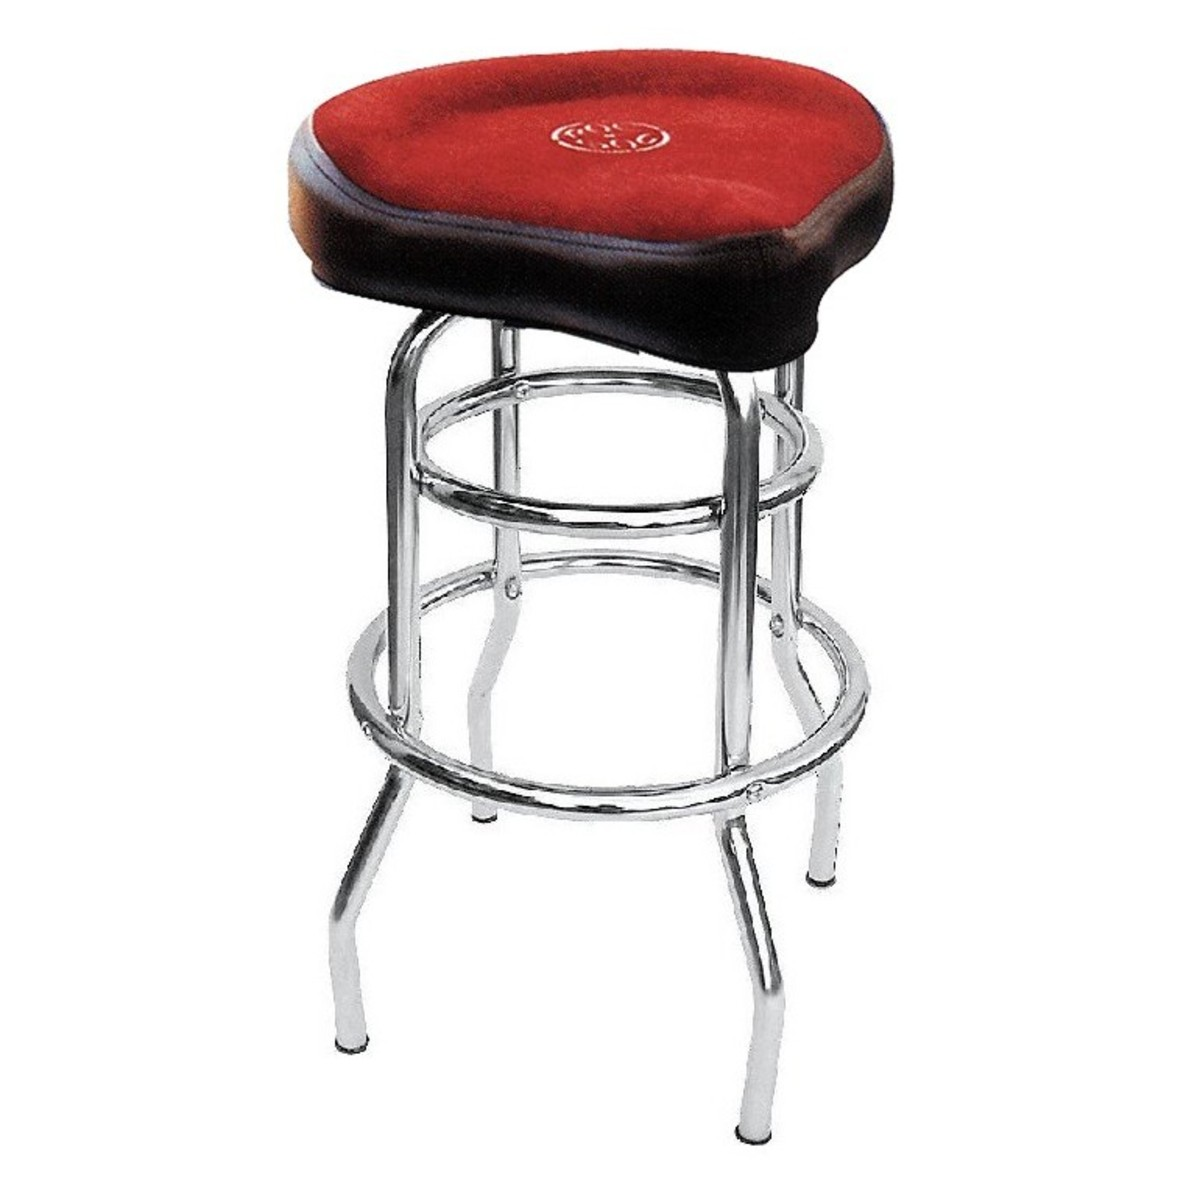 roc n soc tower stool tall 29 red at